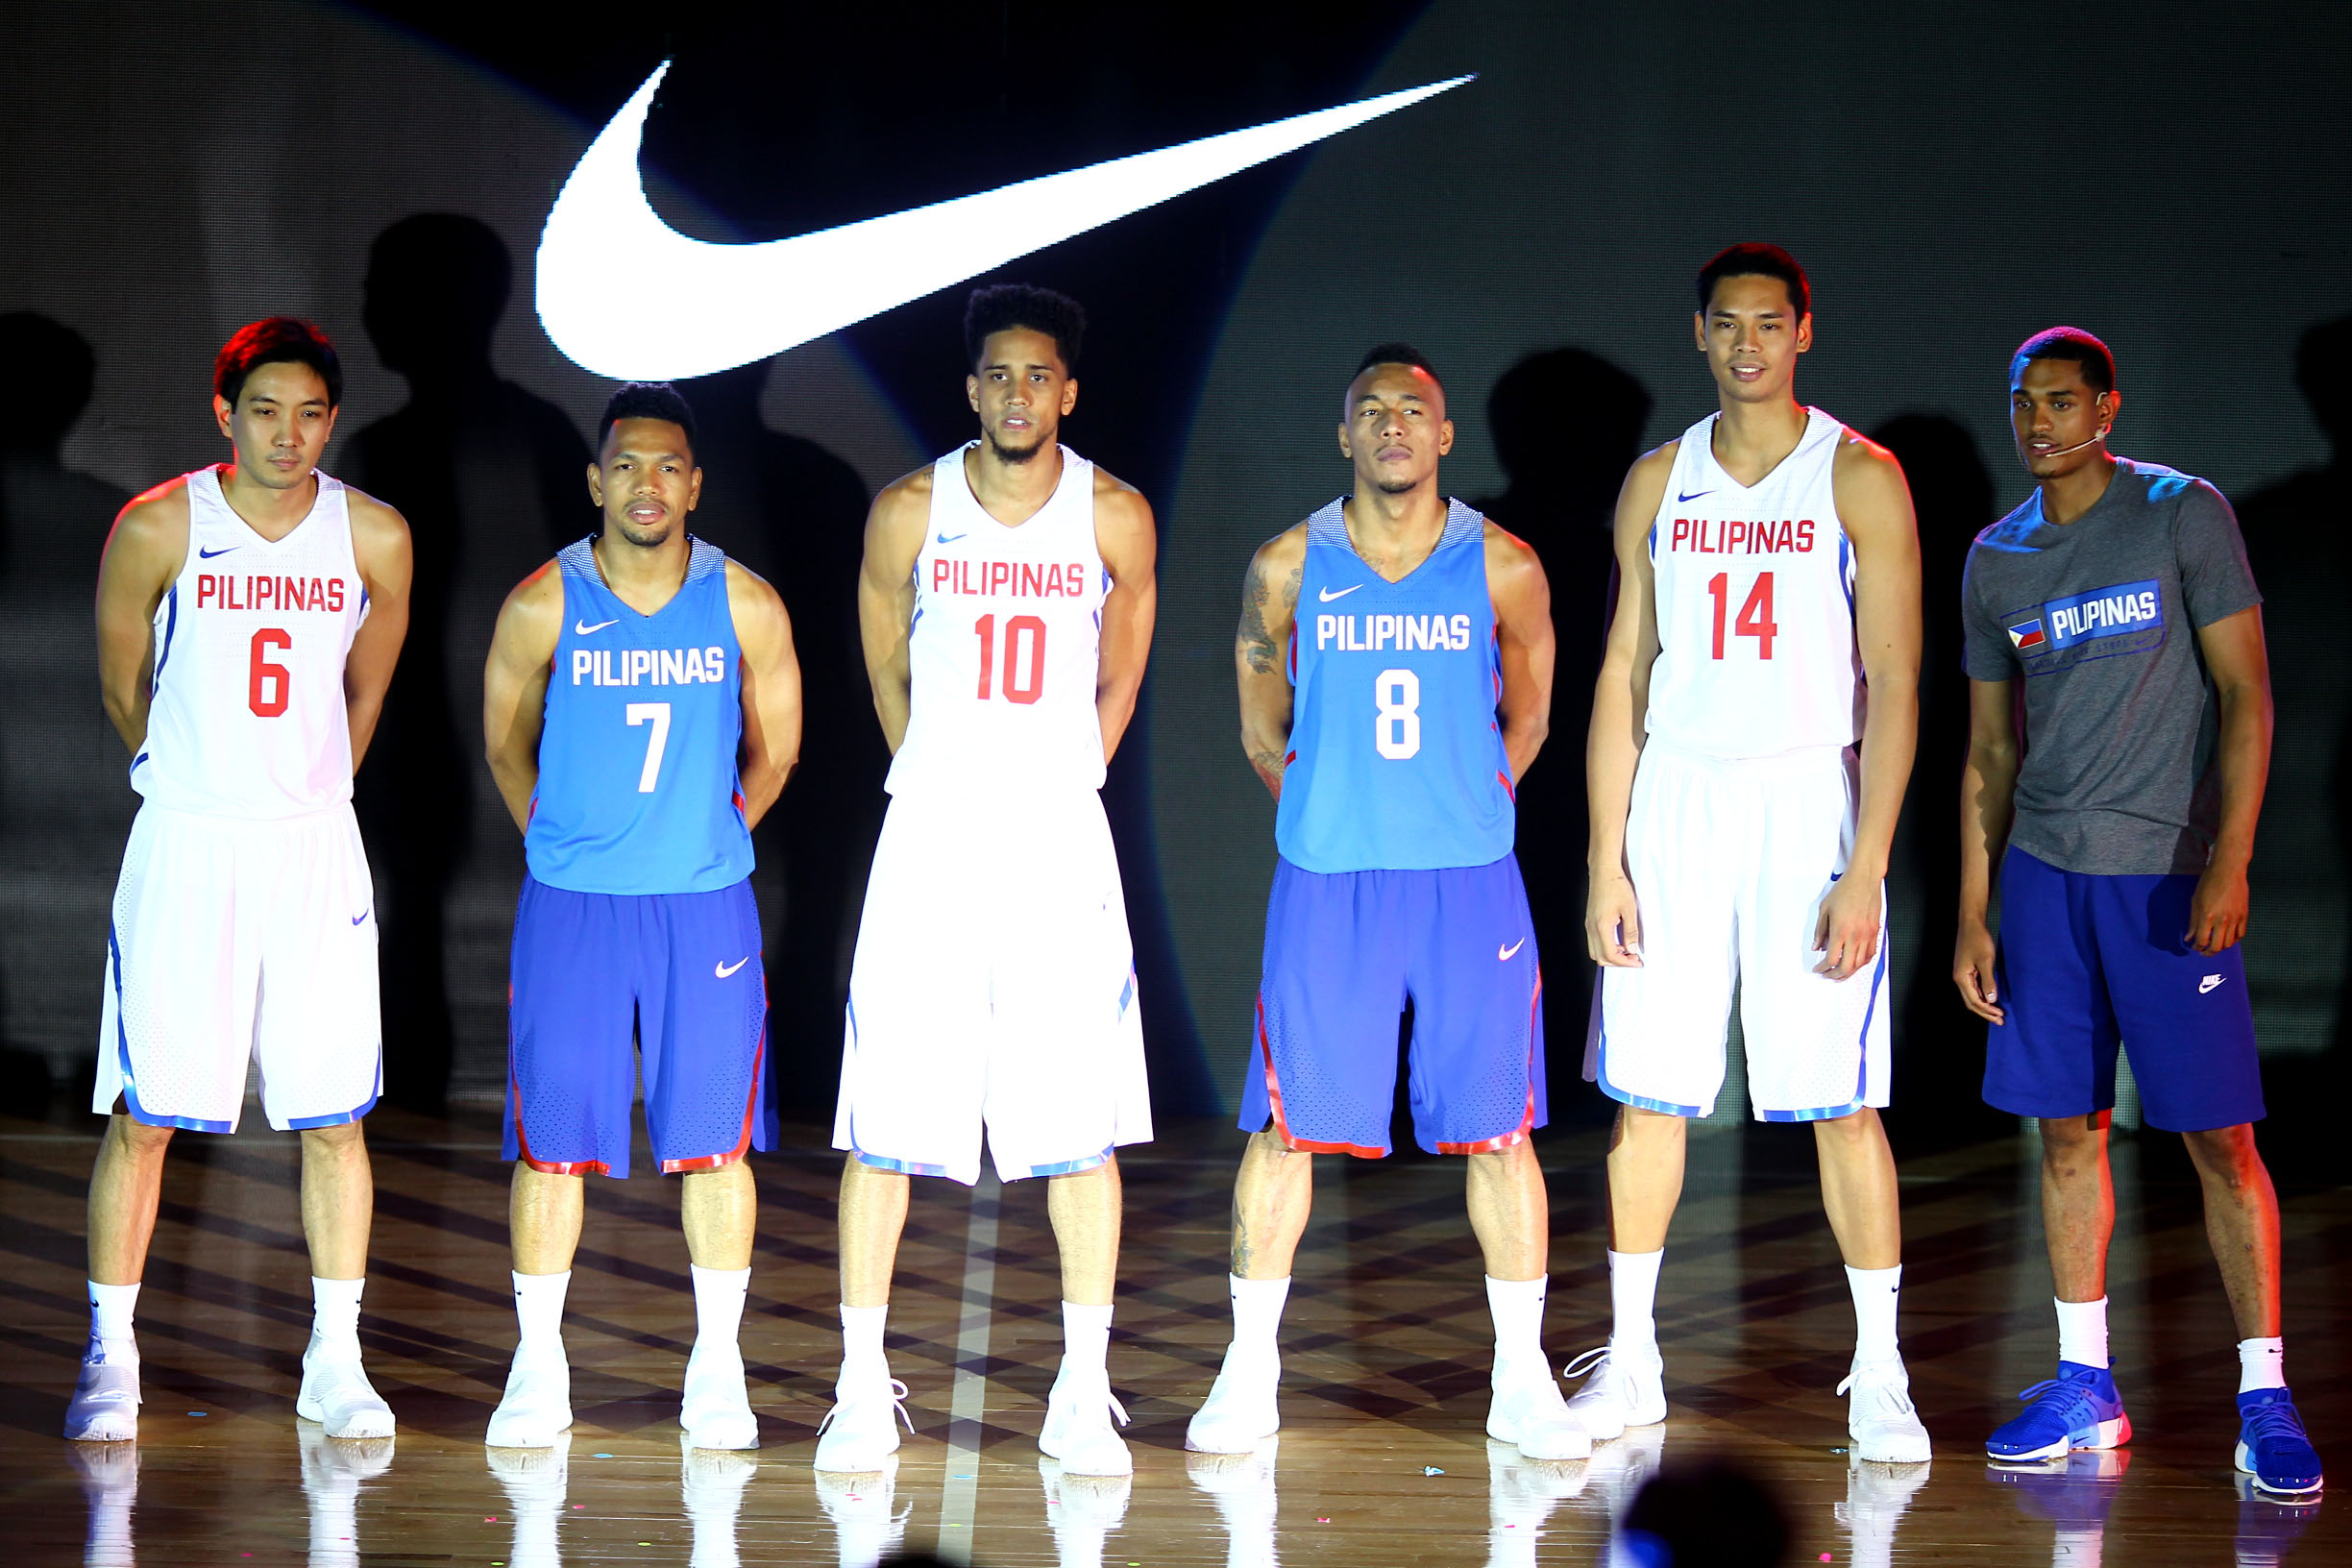 IN PHOTOS: New Gilas Pilipinas jerseys unveiled